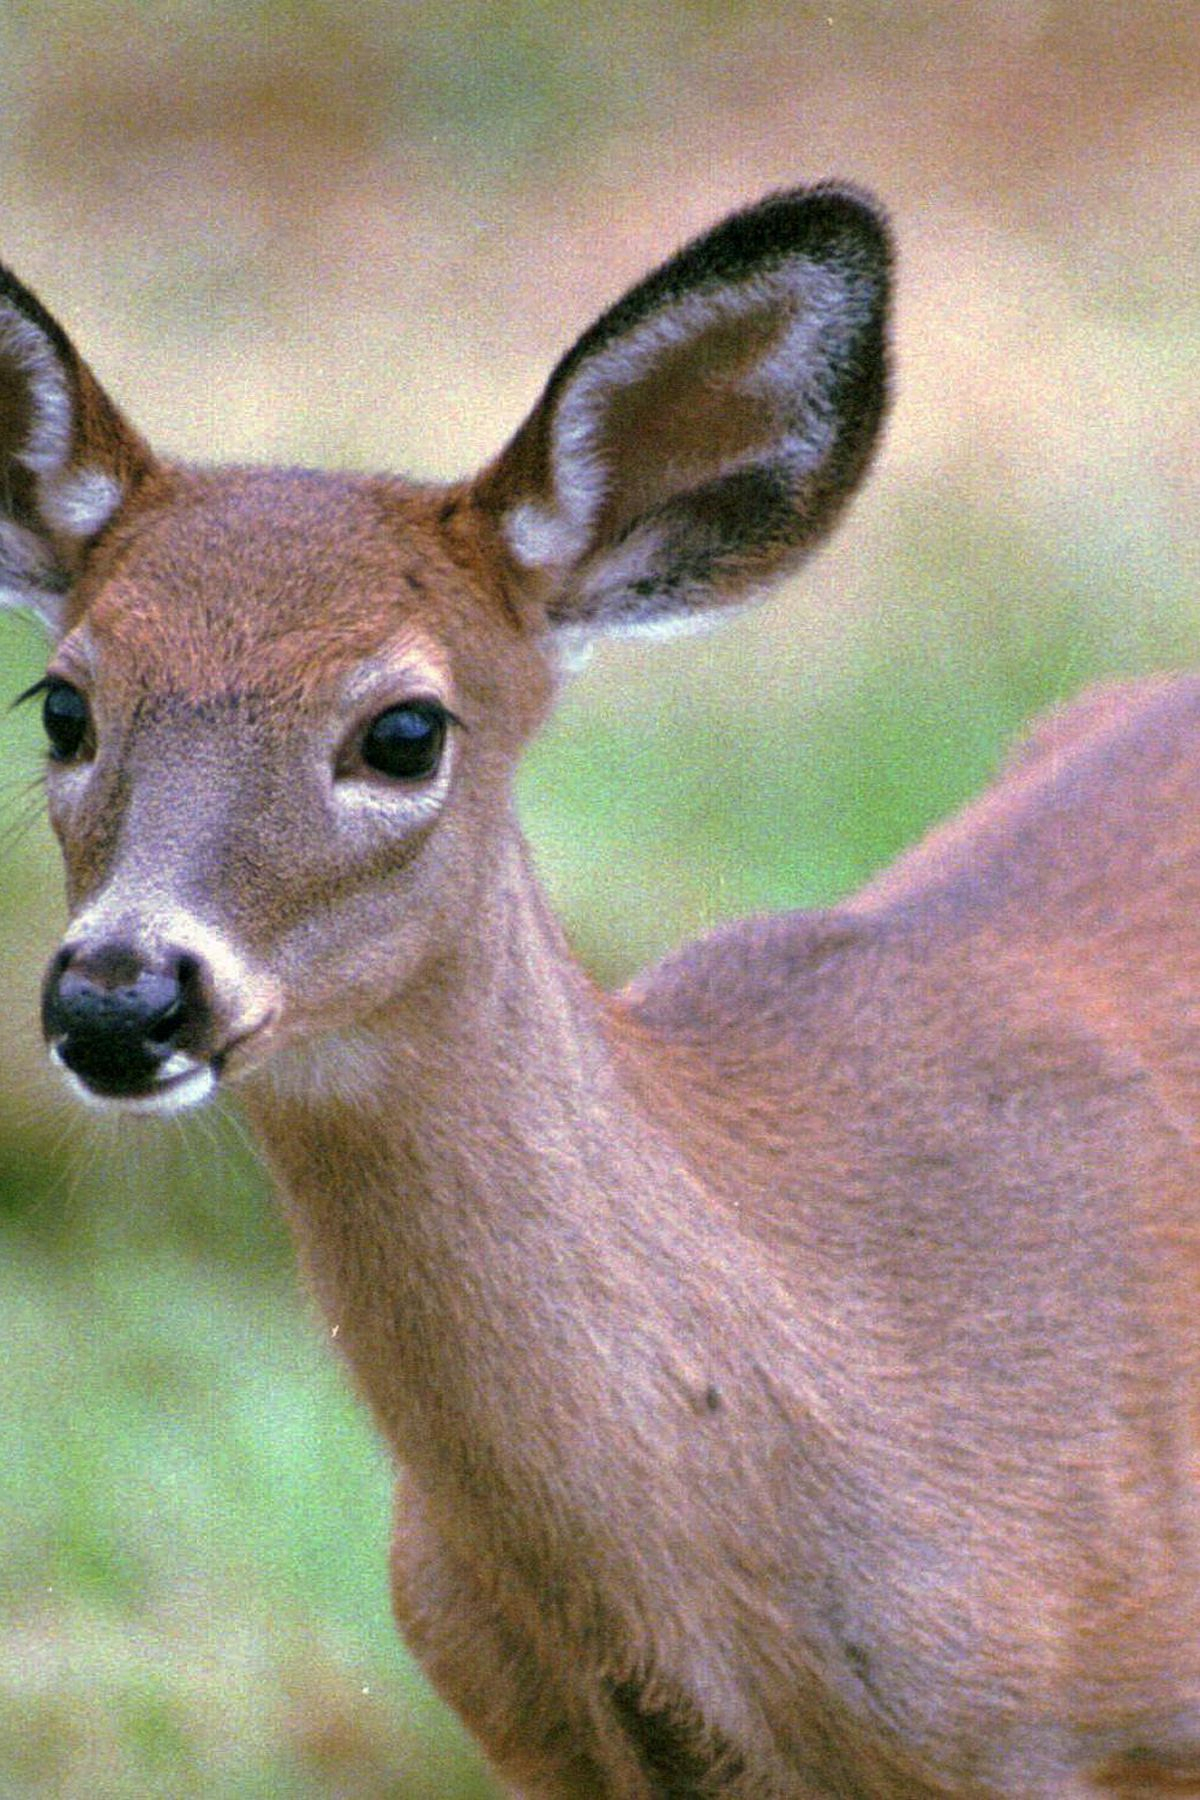 Ldwf: Deer Hunters In Louisiana Should Be Aware Of Escaped